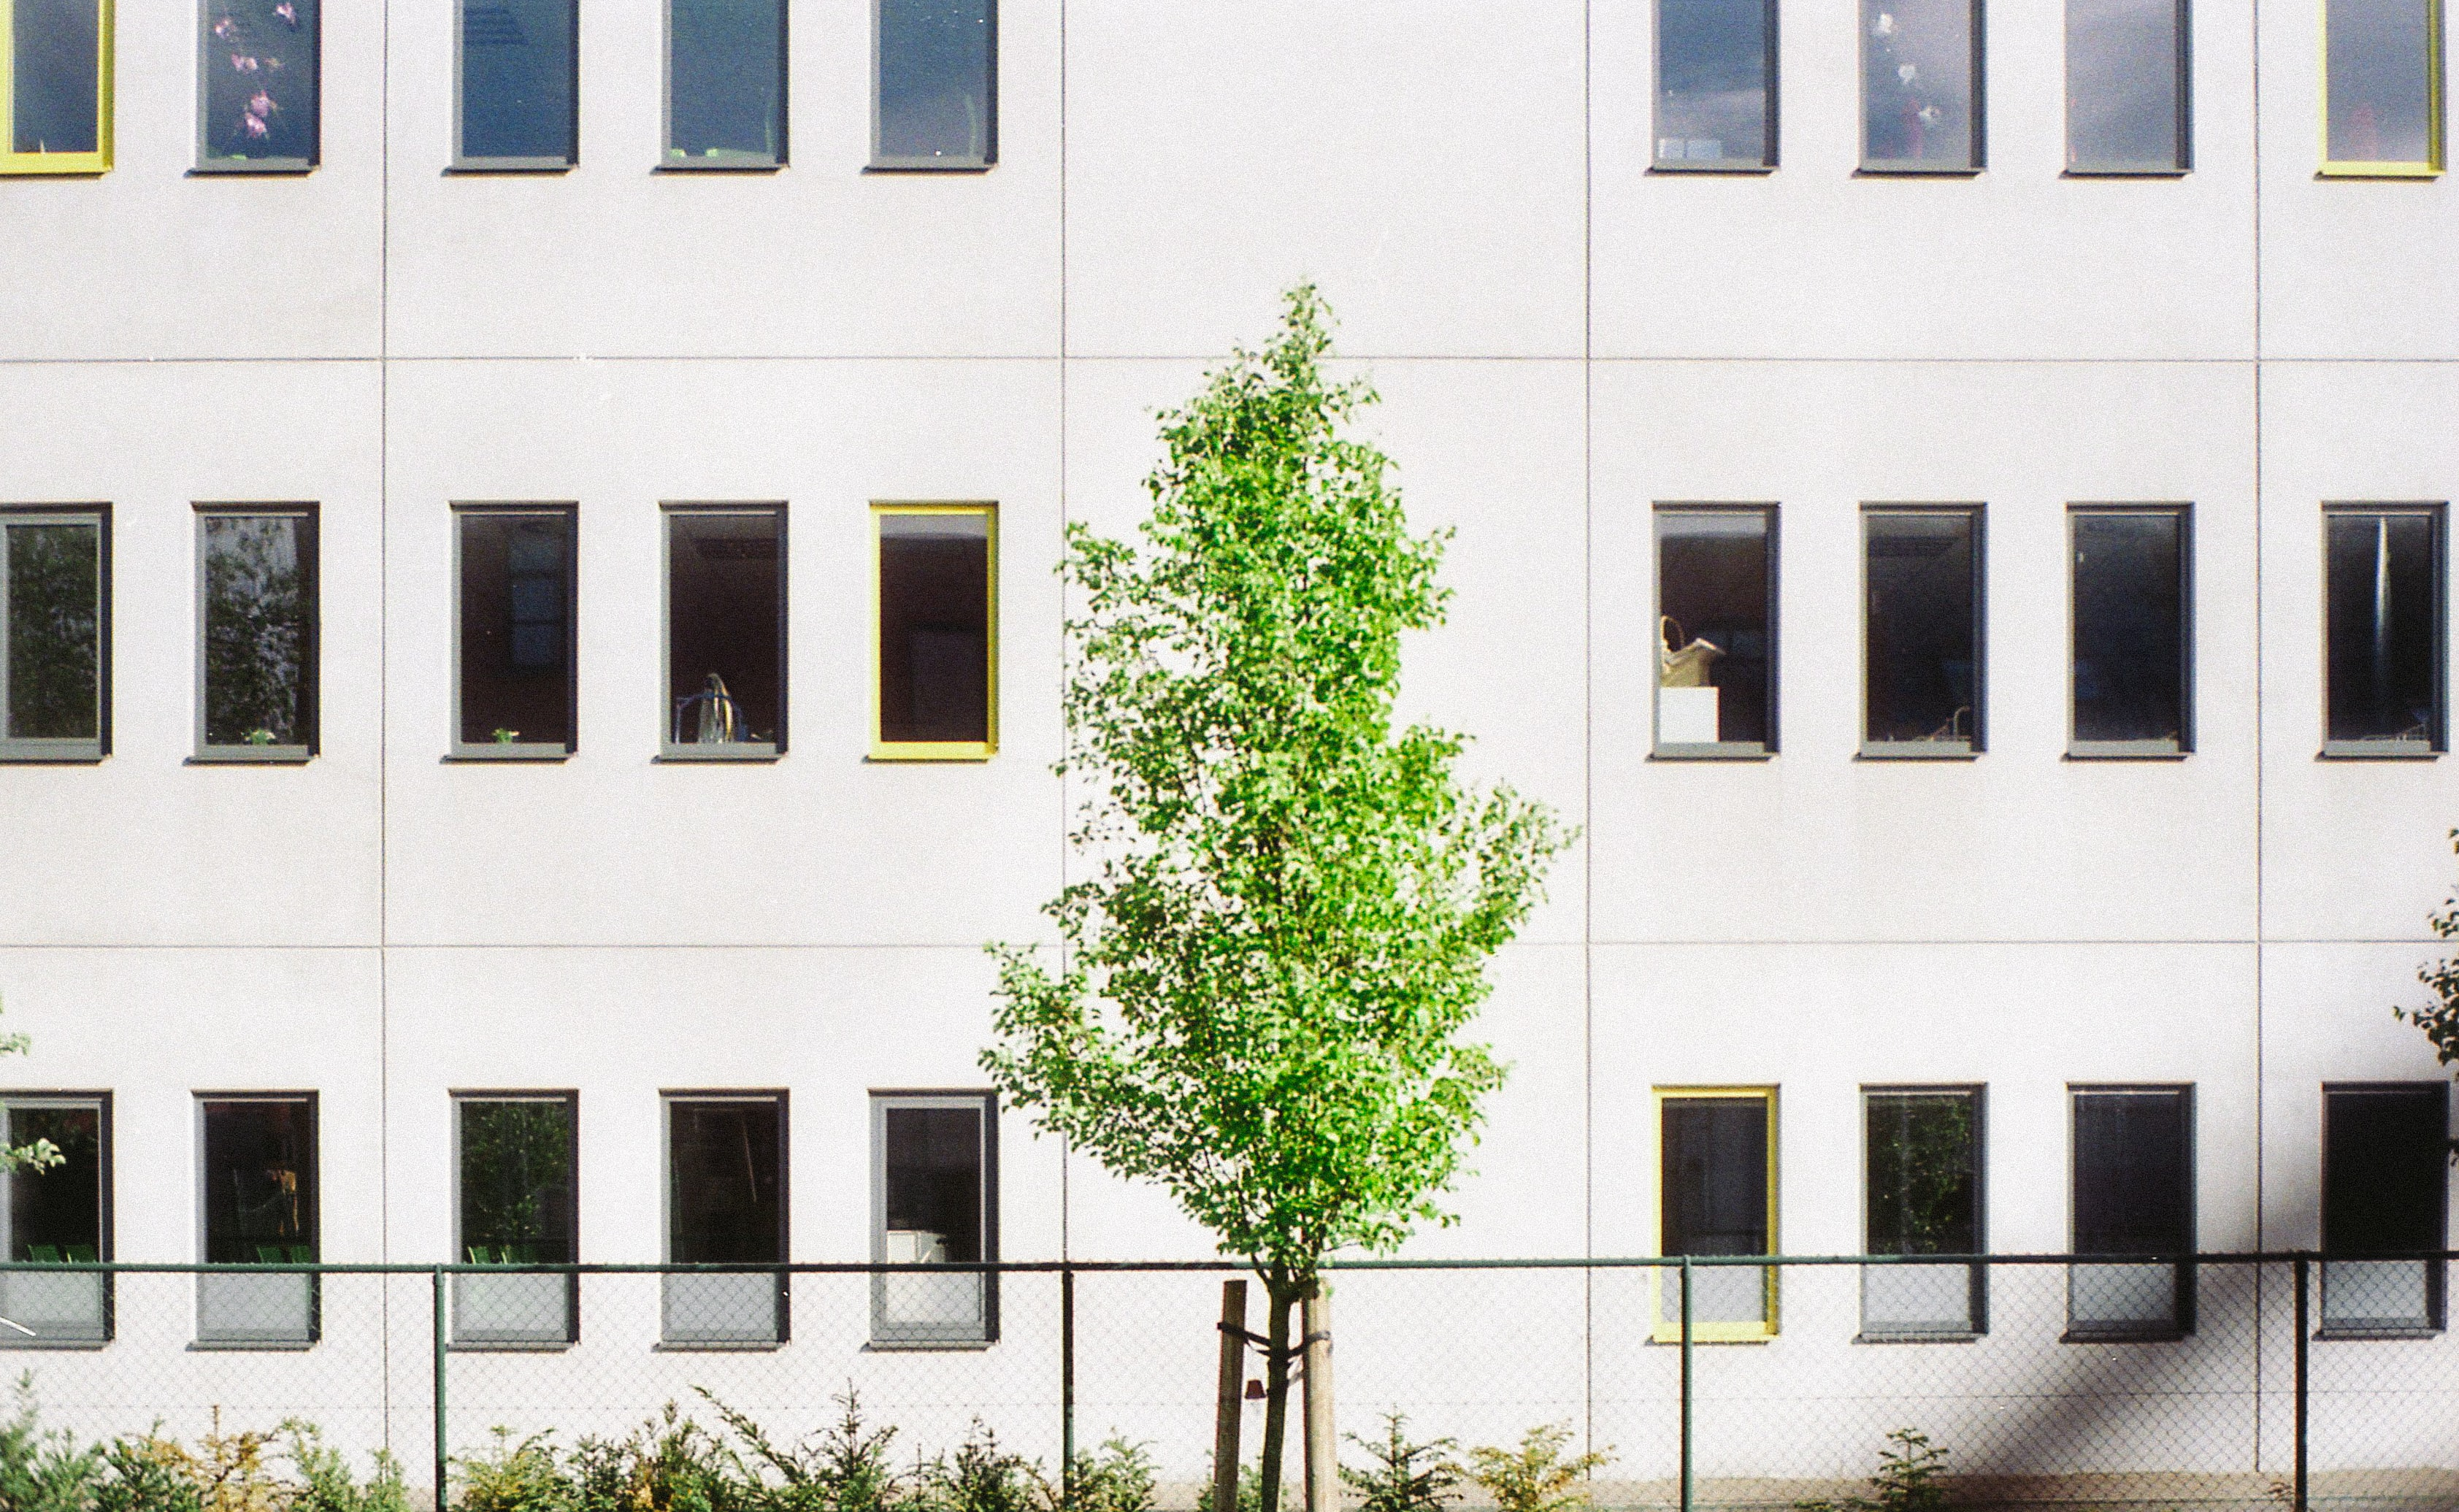 green leafed tree beside gray concrete building